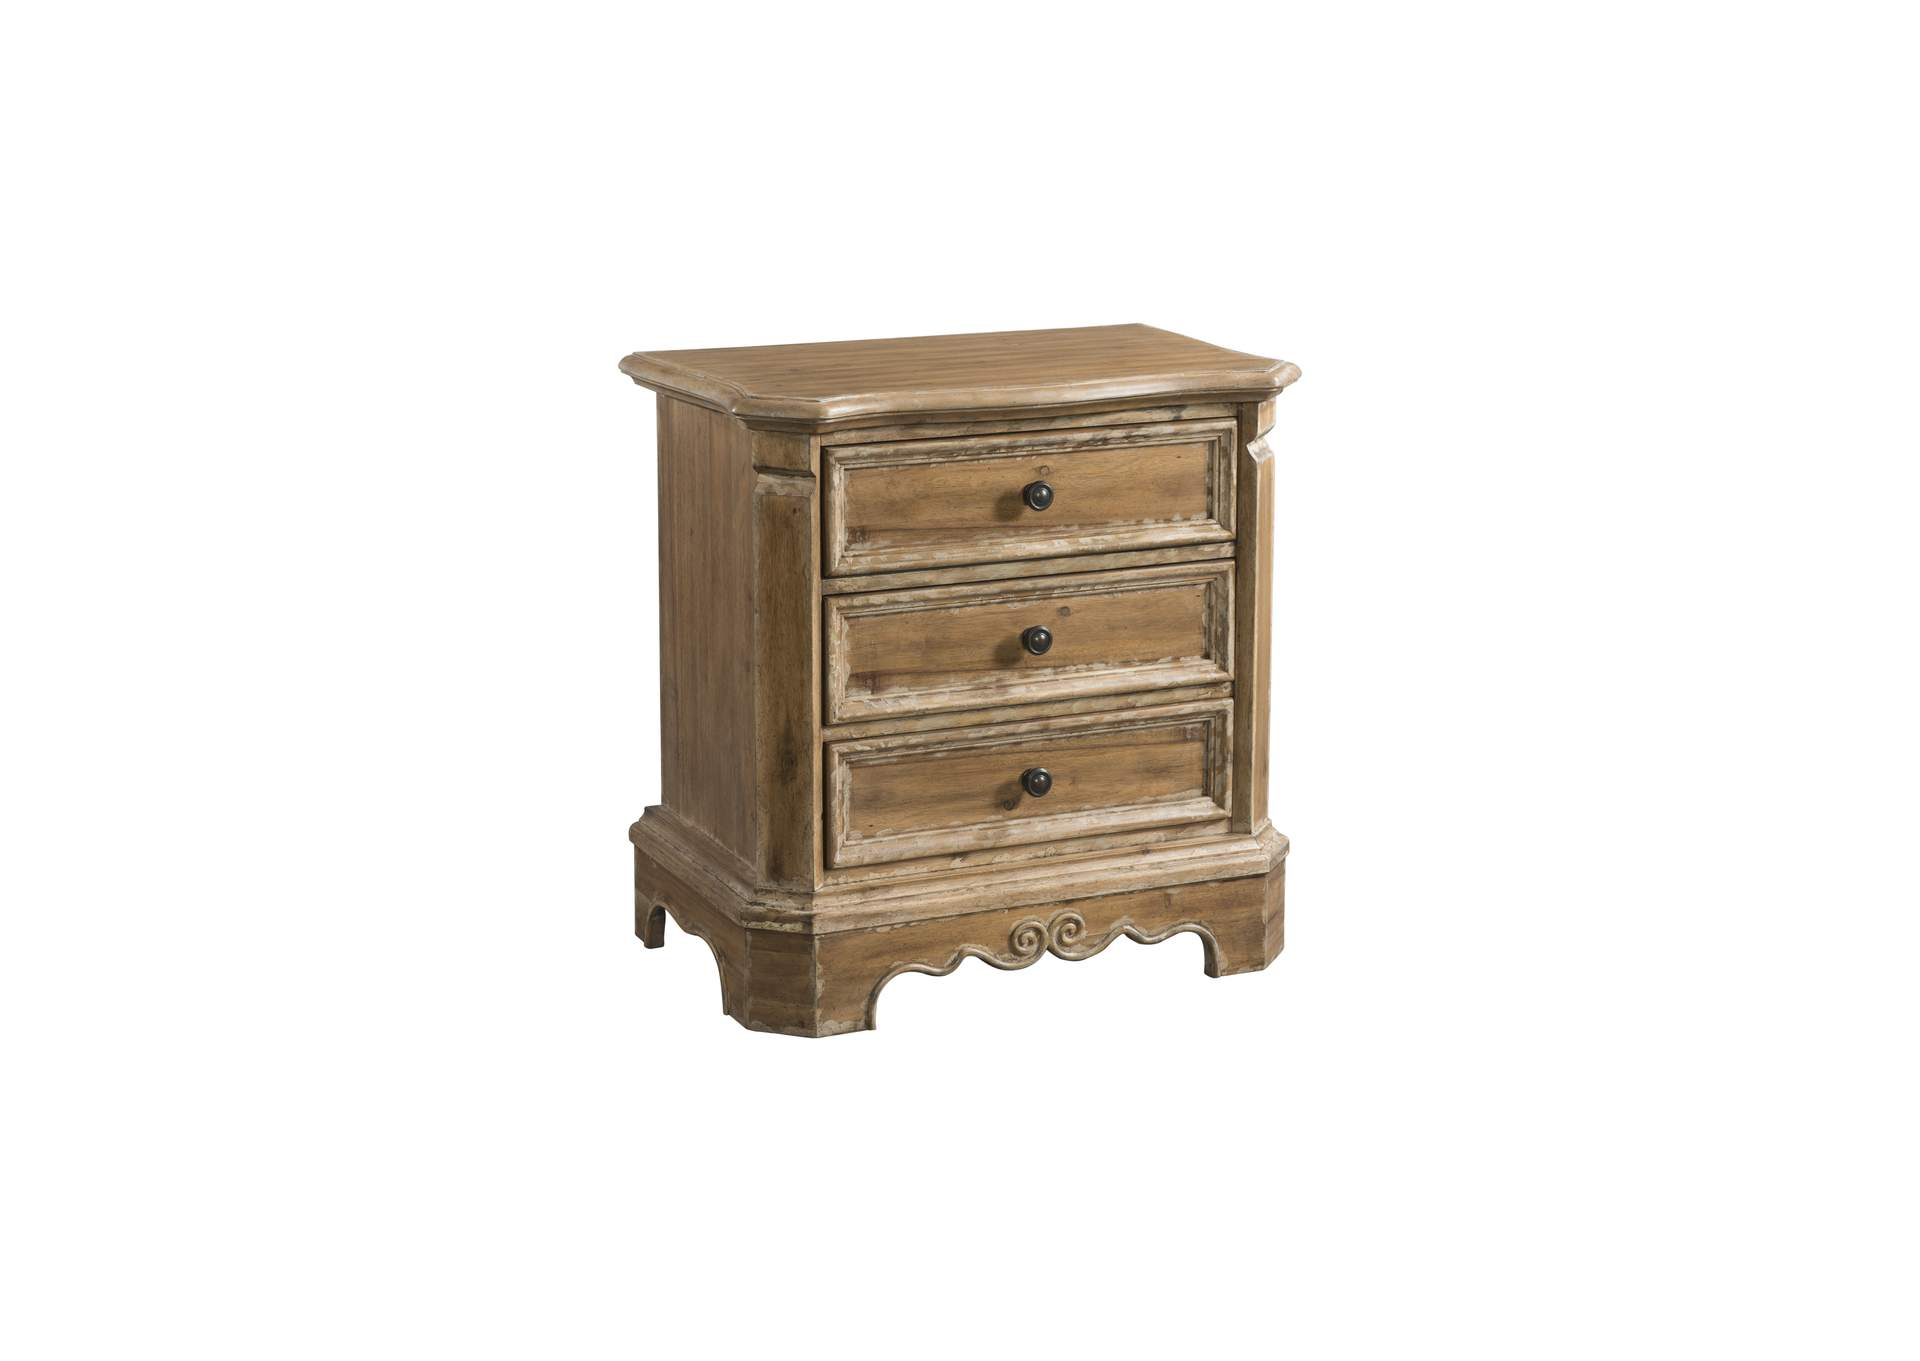 1048 Cottage Charm Nightstand,Lane Furniture